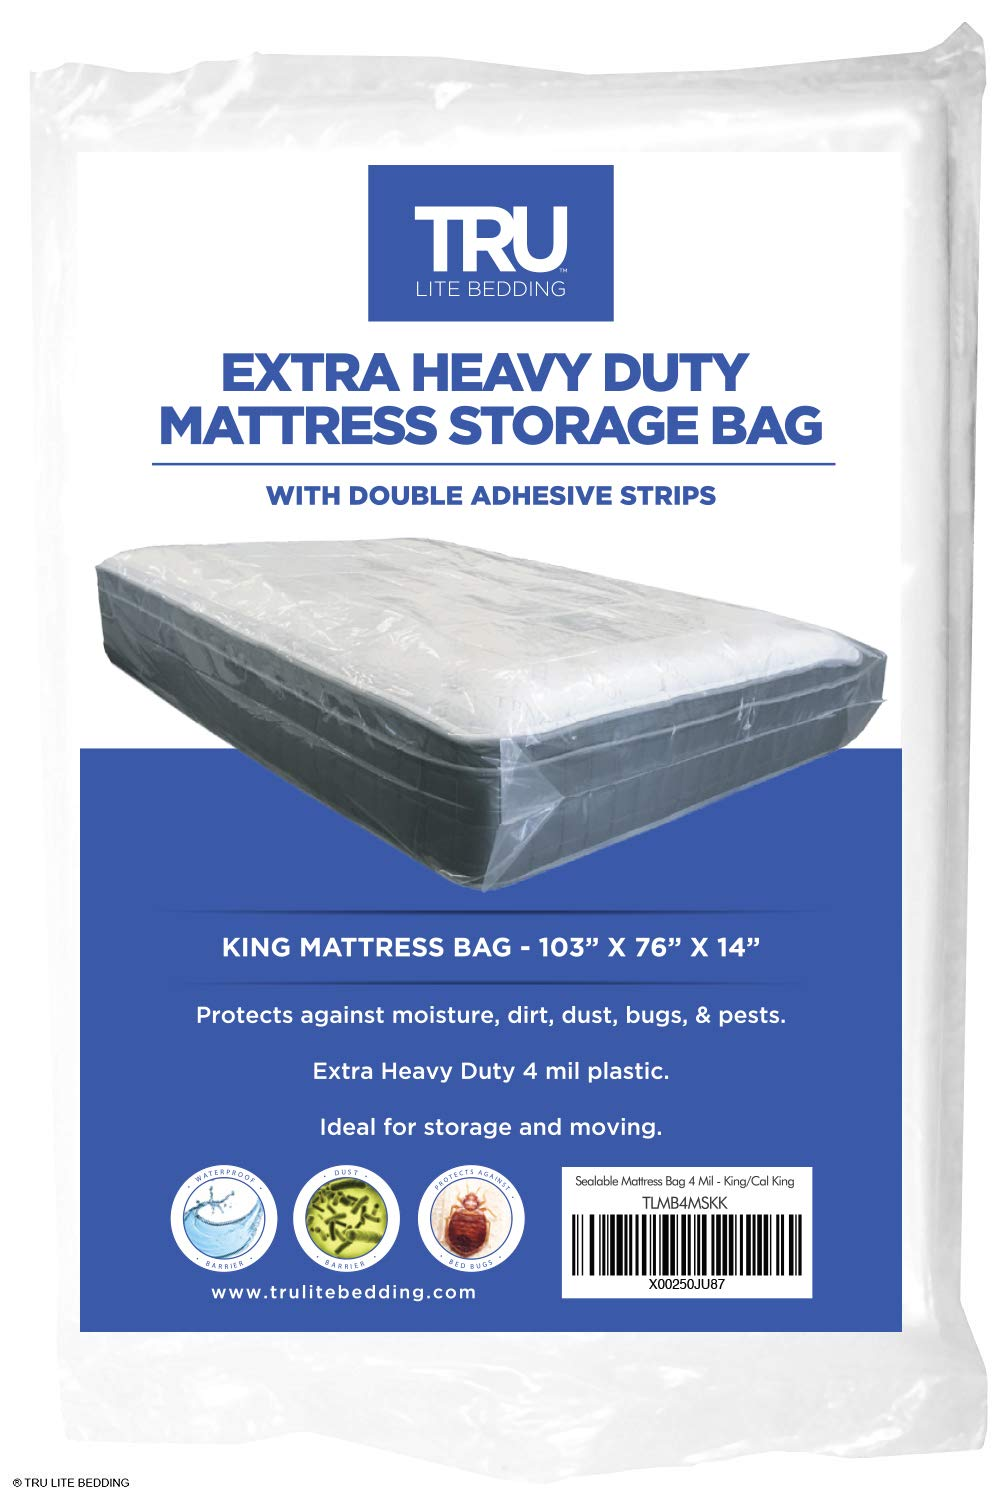 TRU Lite Mattress Storage Bag - SEALABLE Mattress Bag for Moving - Heavy Duty Extra Thick 4 Mil Plastic - Fits Standard, Extra Long, Pillow Top Sizes - King Size